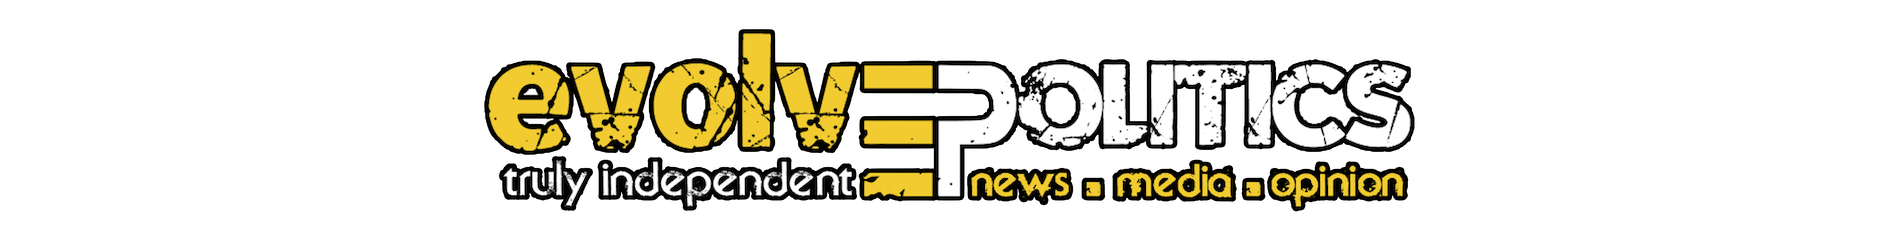 Evolve Politics | Truly Independent News, Media & Opinion